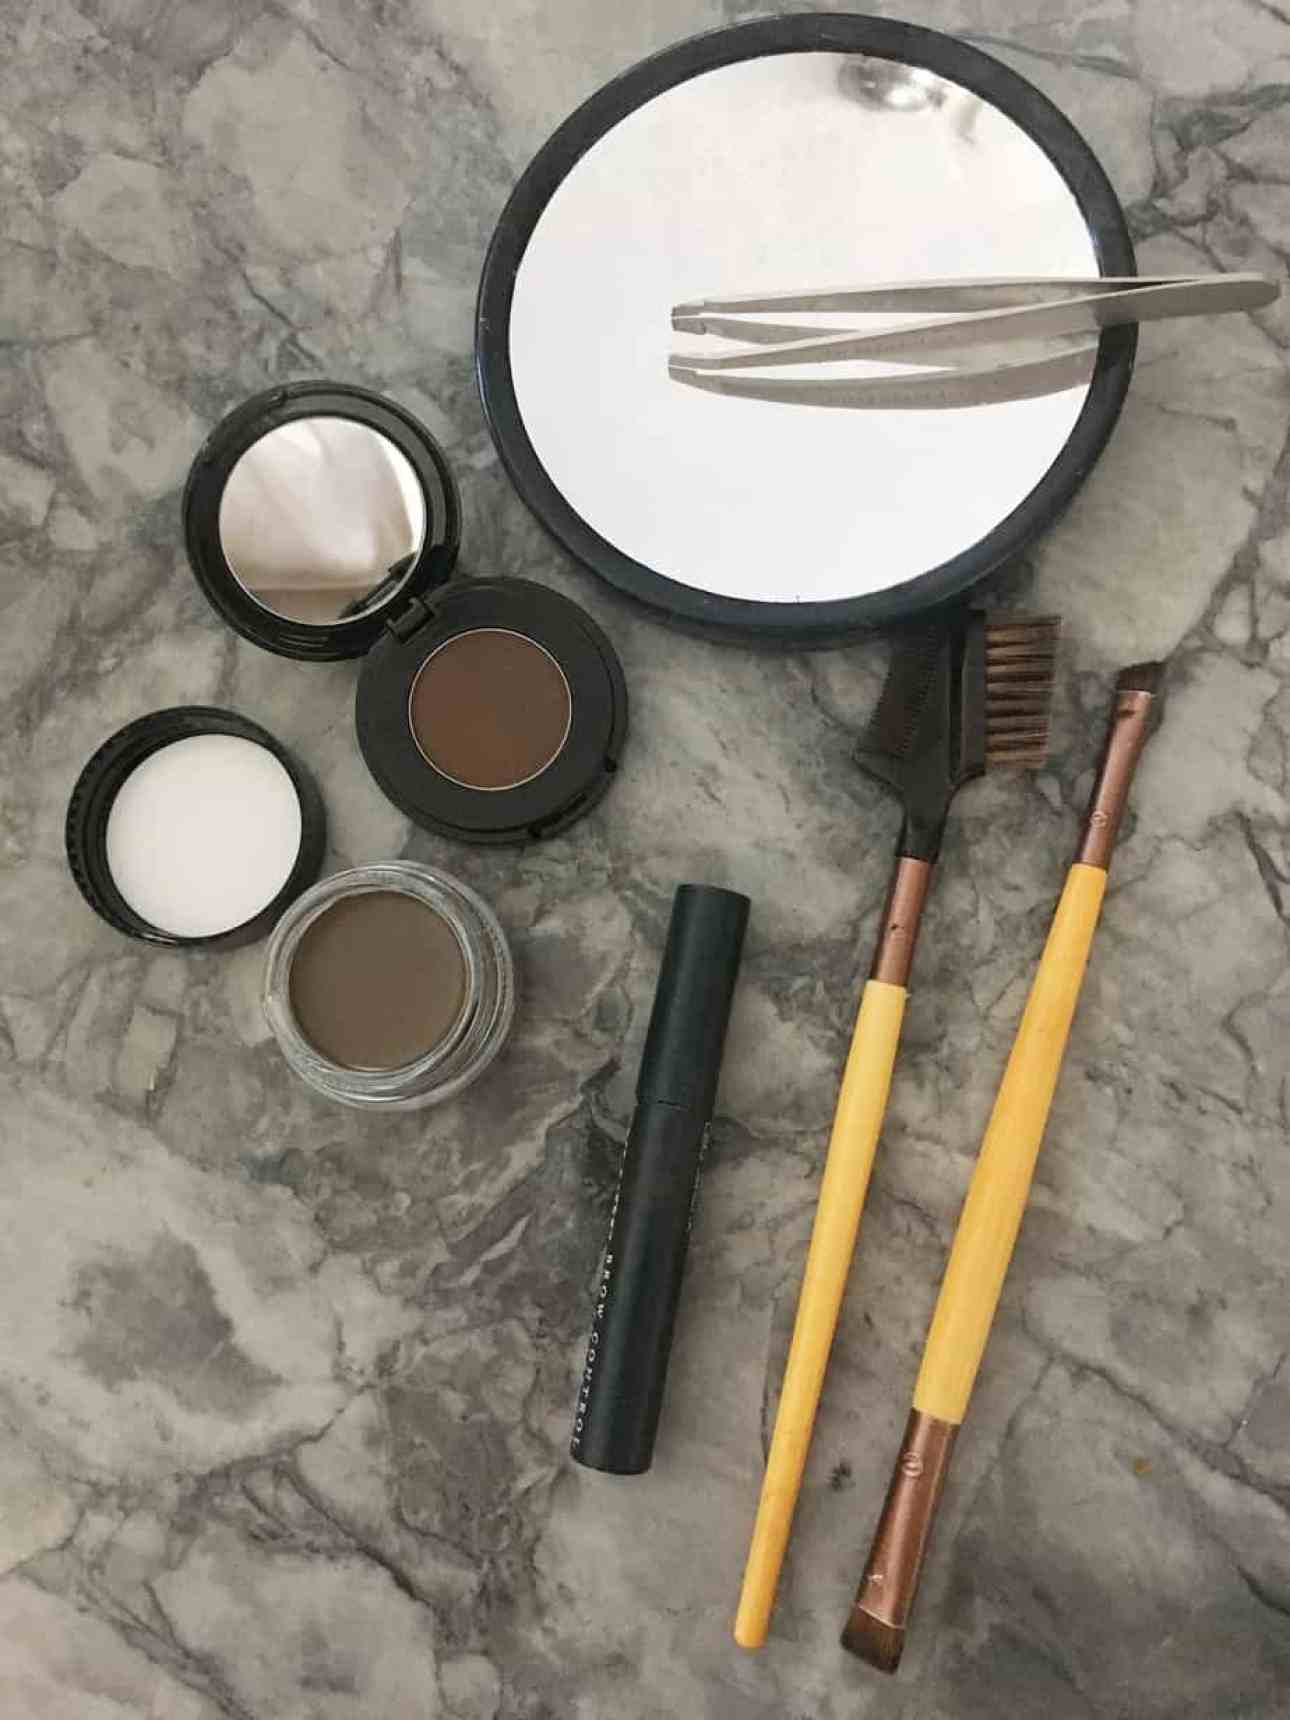 The supplies needed to shape and fill your eyebrows.